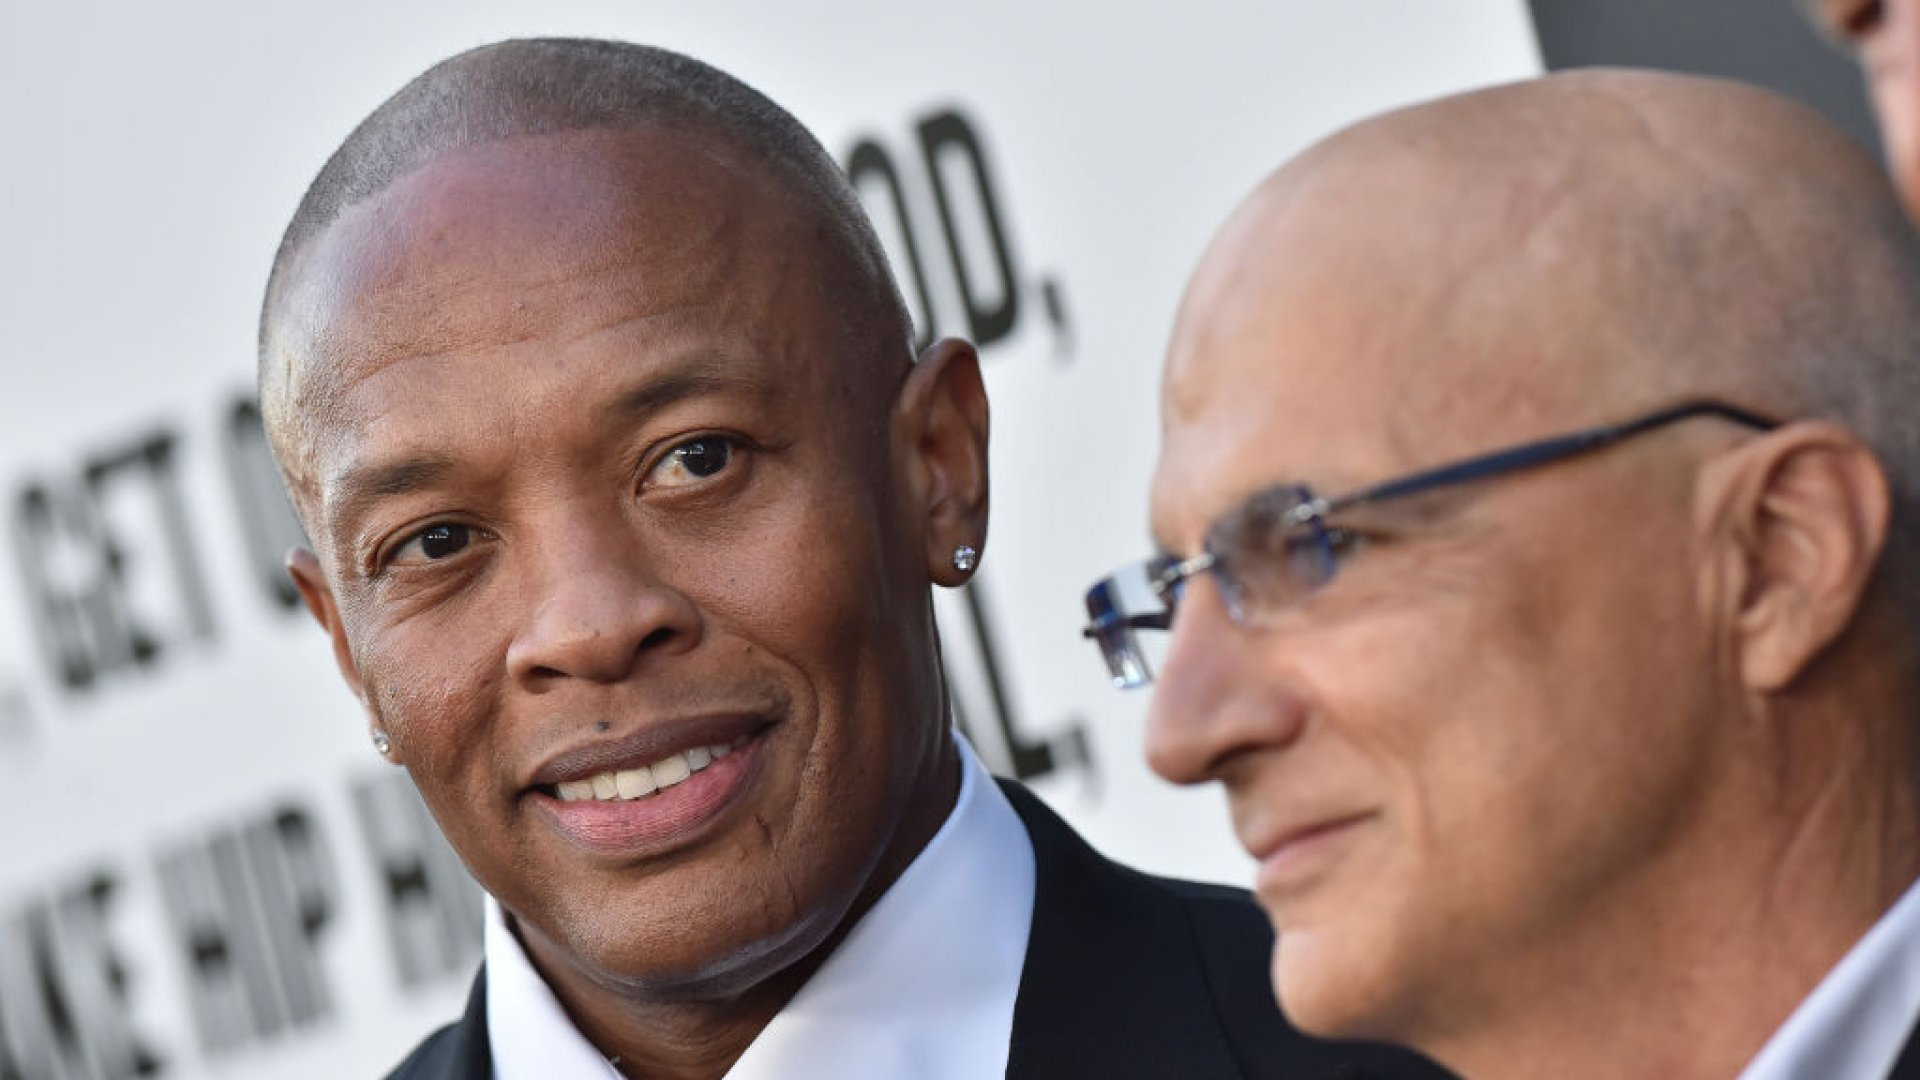 Rapper/producer Dr. Dre and producer Jimmy Iovine arrive at the premiere of 'The Defiant Ones.'